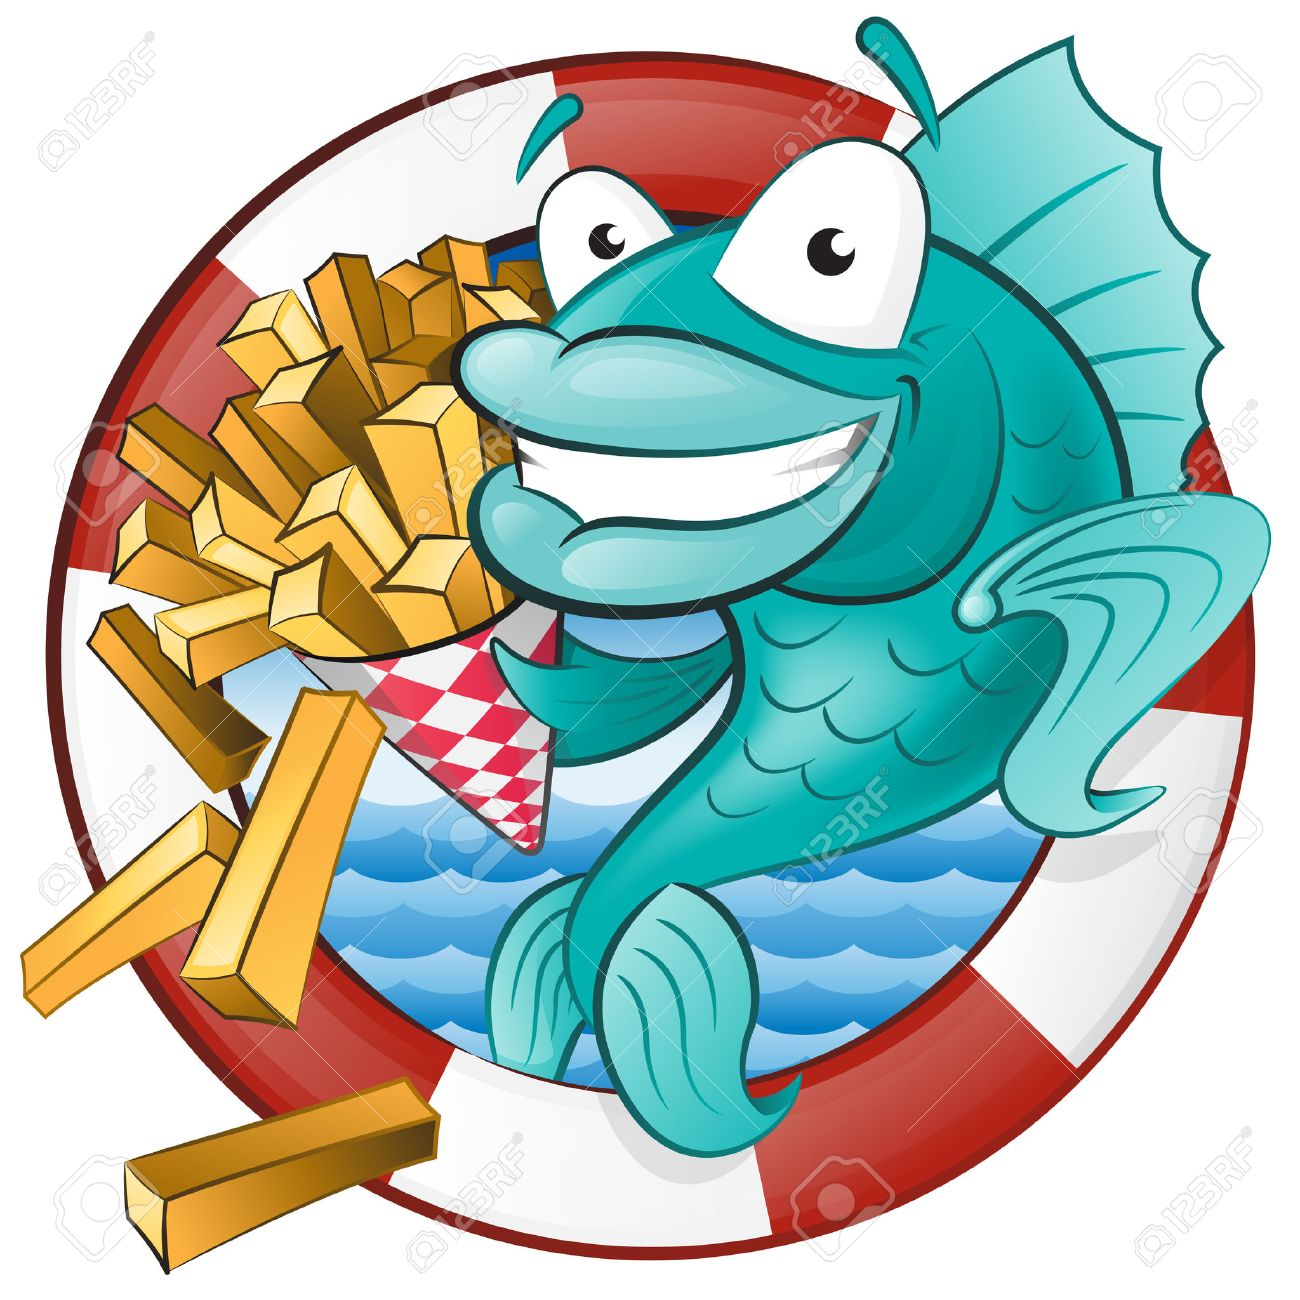 Fish Eating Fish Cartoon Cartoon Cod Fish Eating a